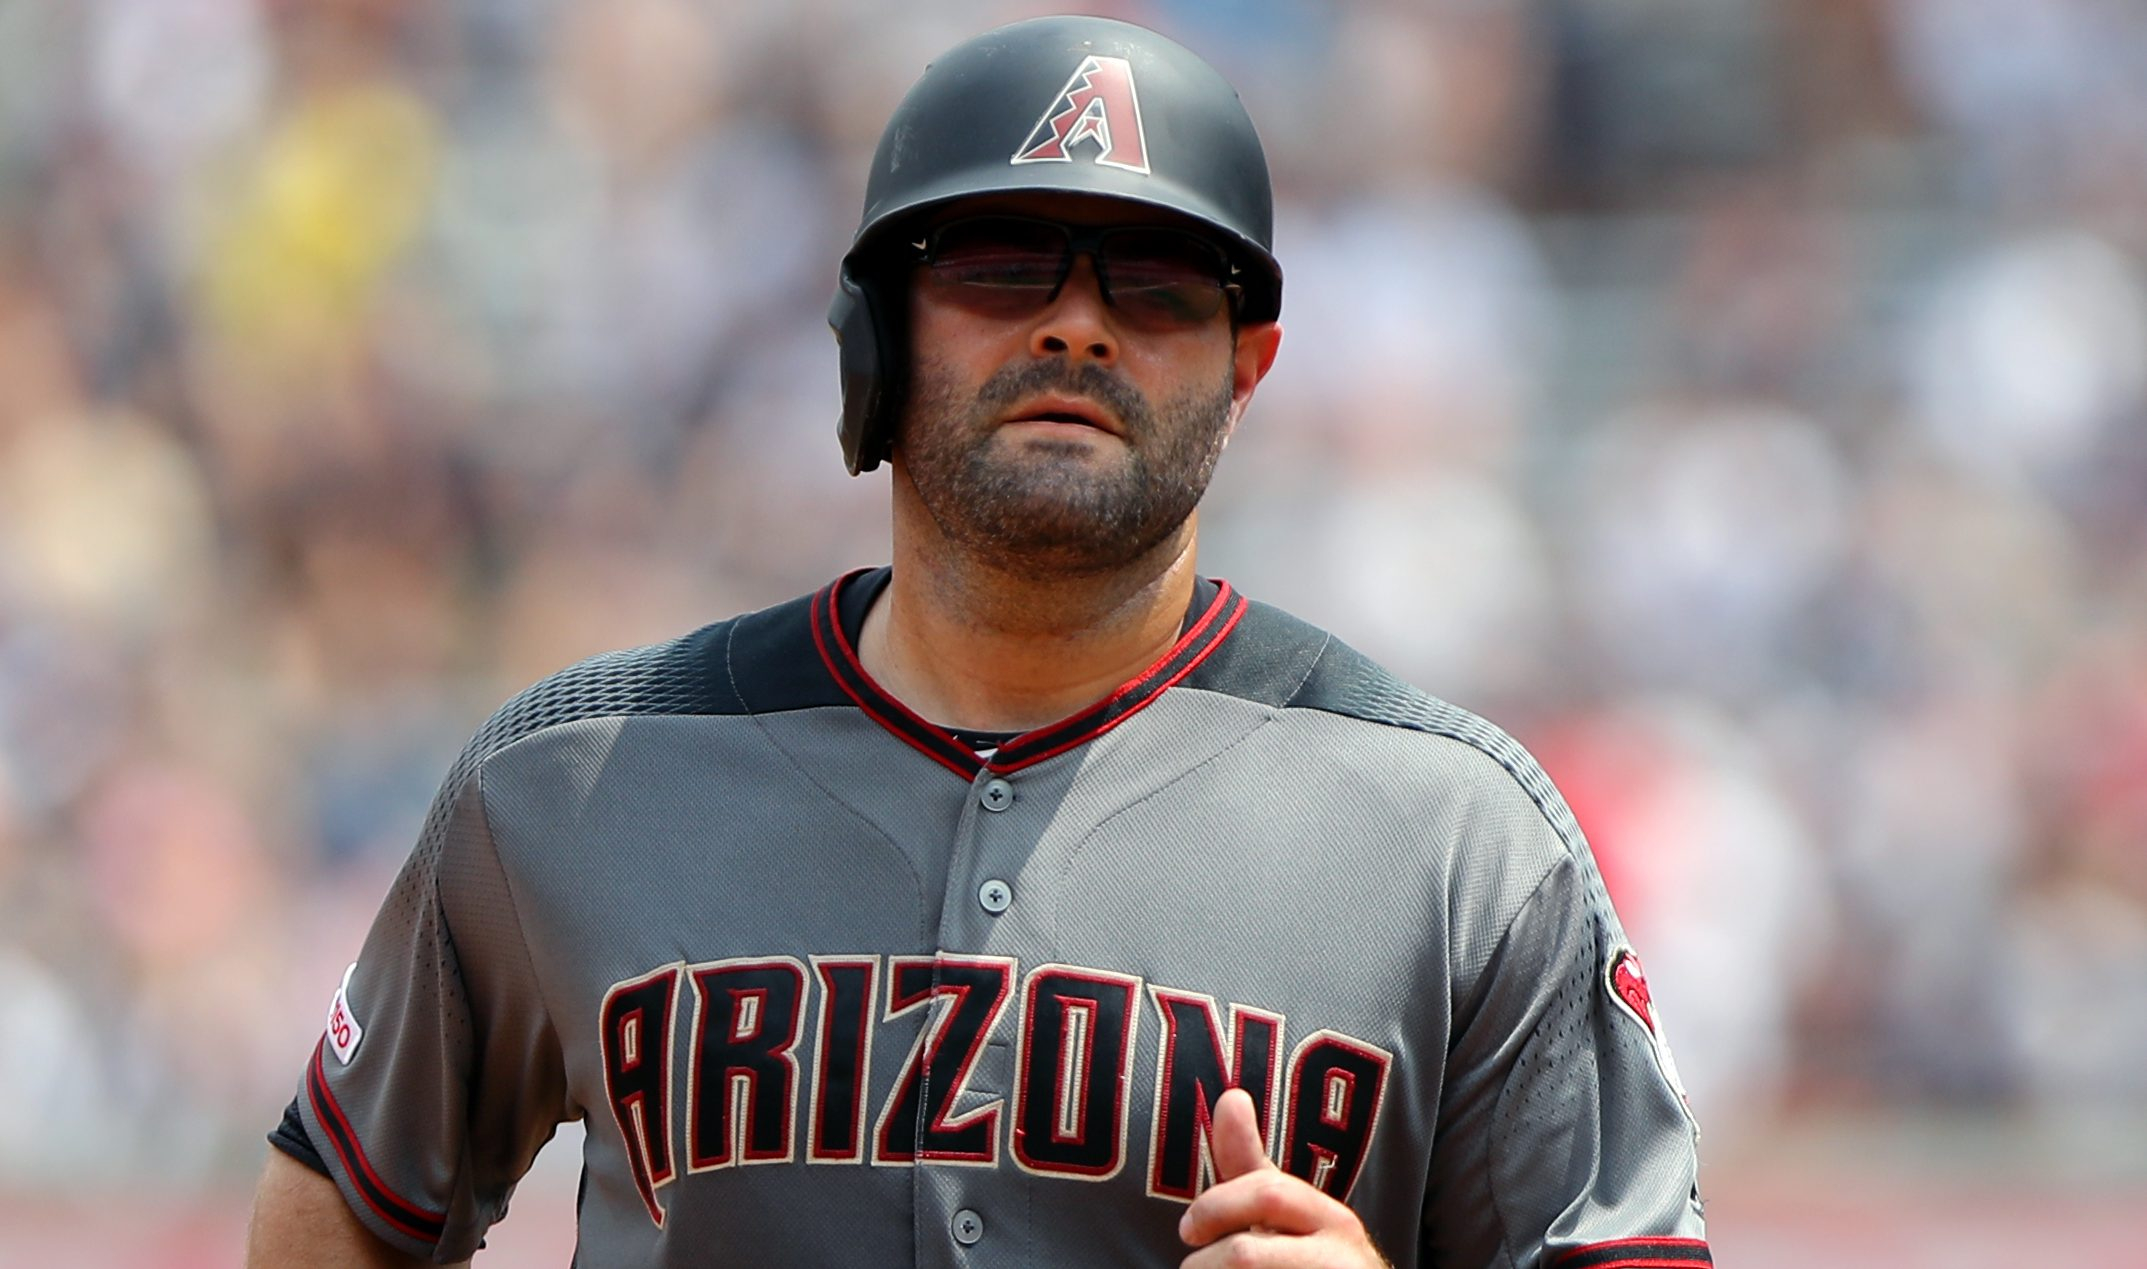 Alex Avila signs with the Twins on a one-year deal - MLB | NBC Sports